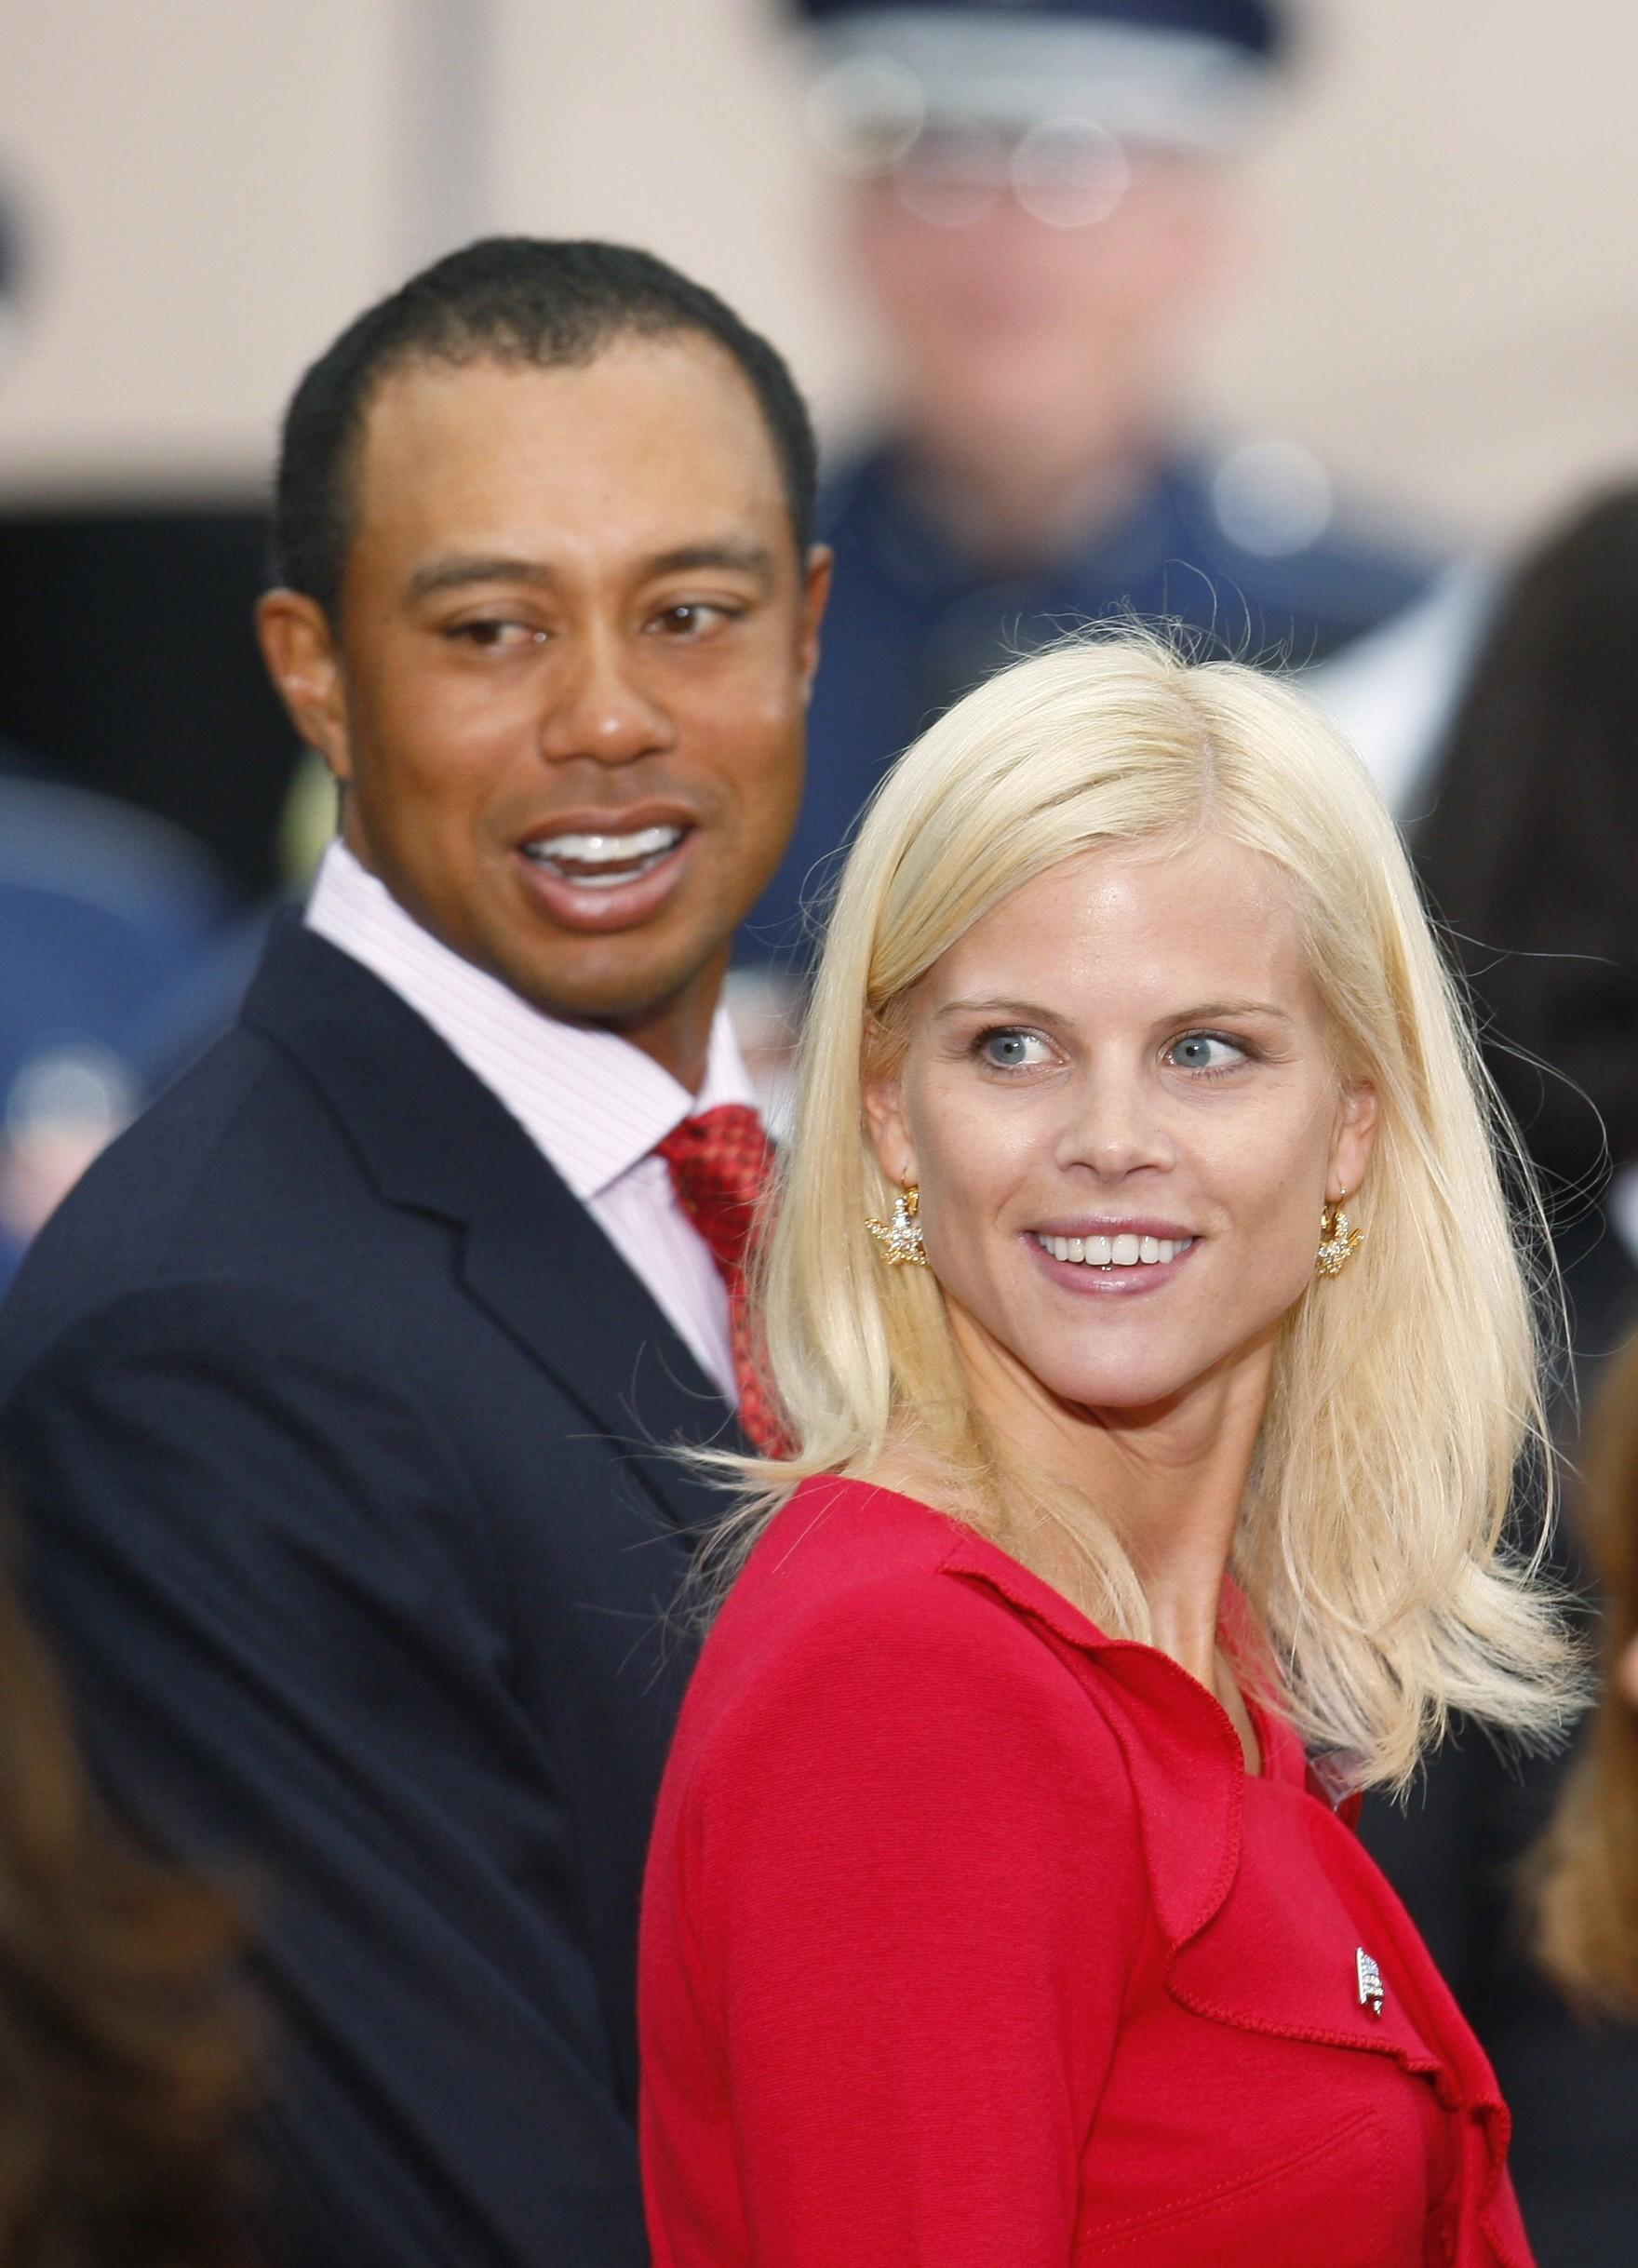 Tiger Woods and Elin Nordegren divorced in 2010